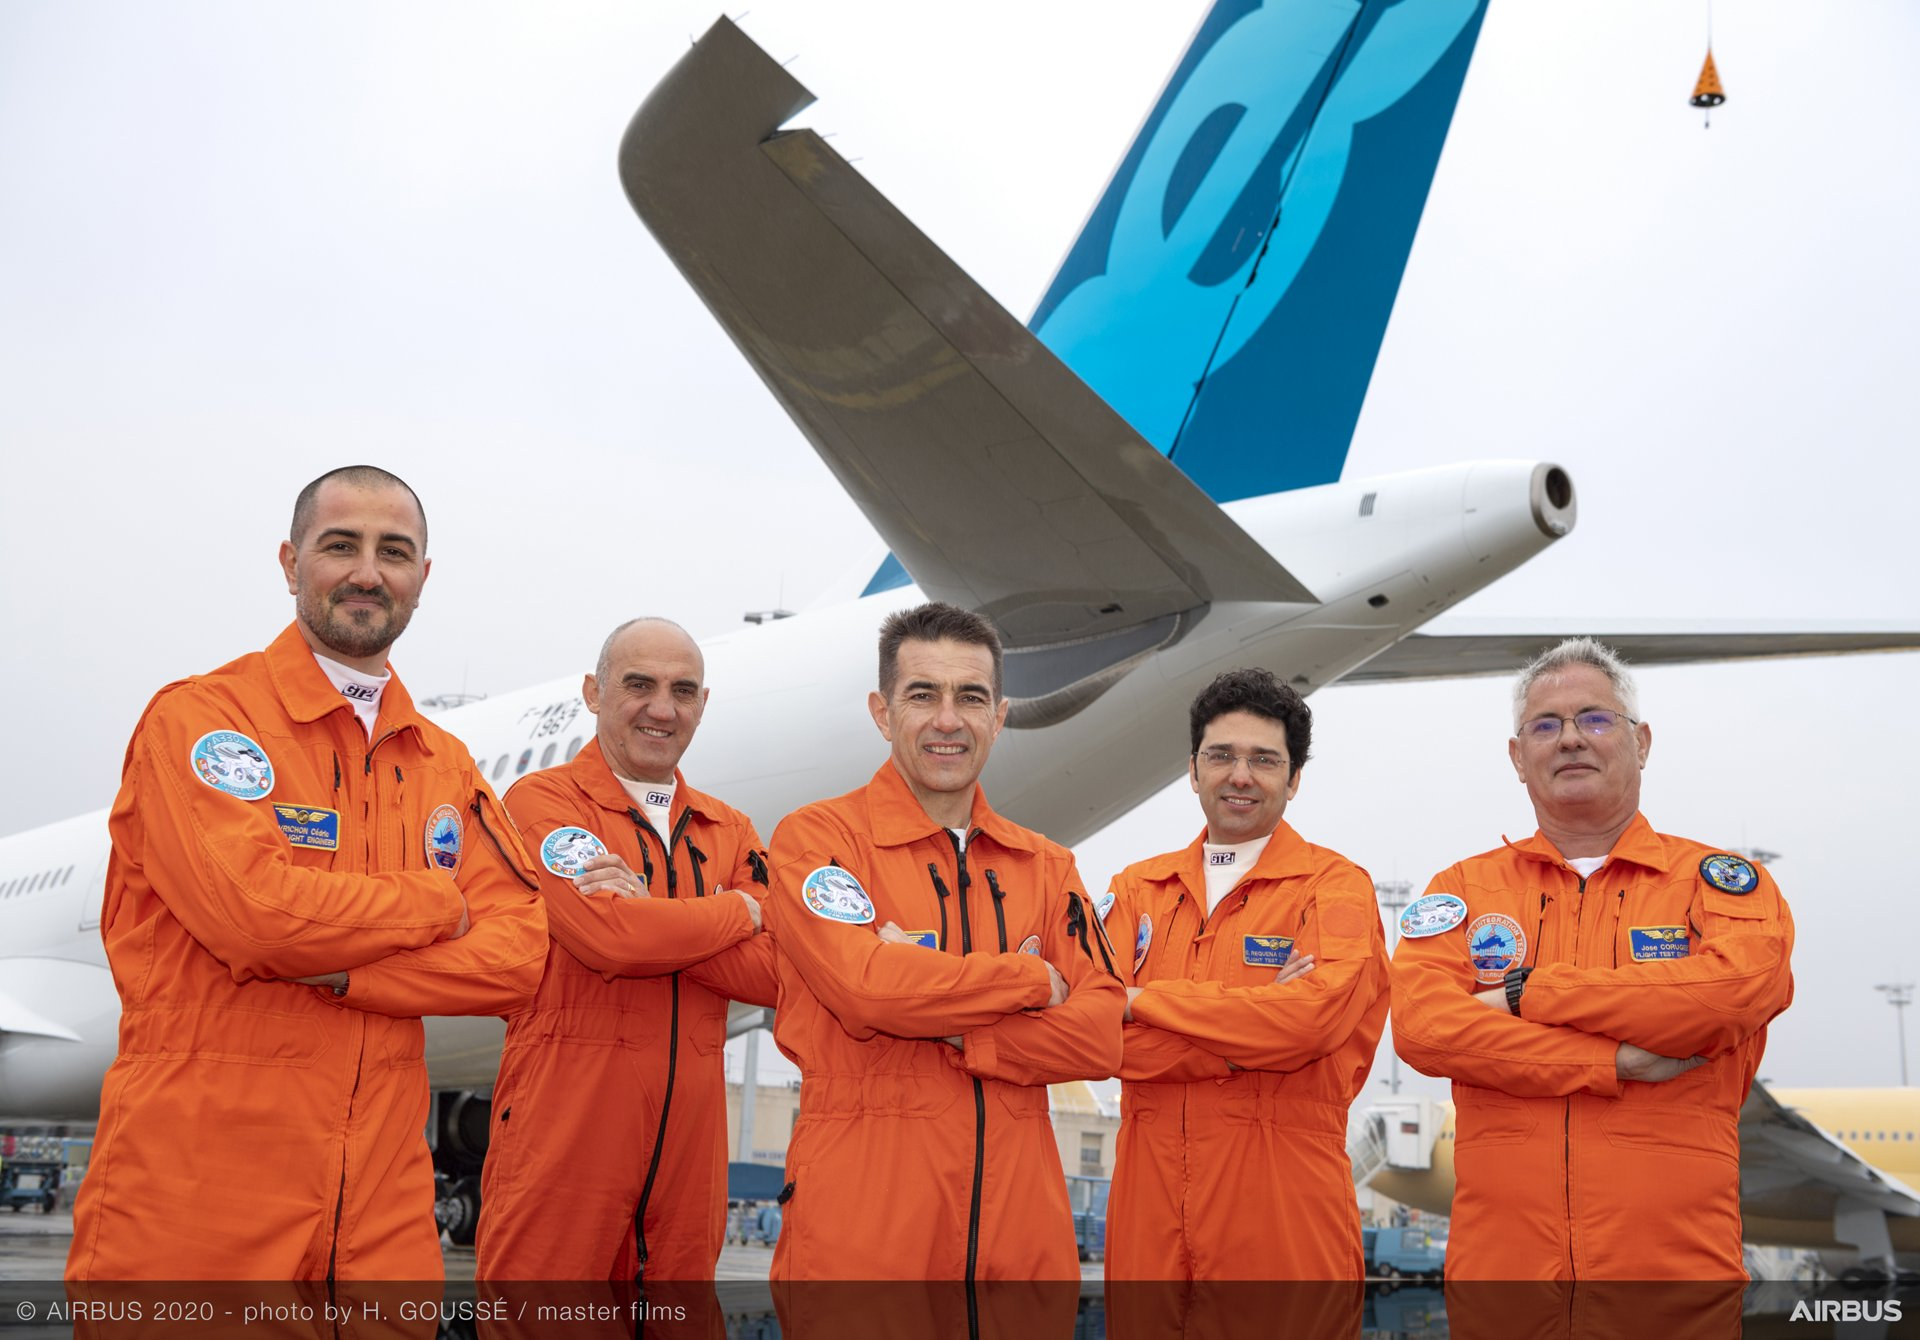 On board the maiden flight of Airbus' new A330neo increased take-off weight variant were experimental test pilots Bernardo Saez-Benito Hernandez and Yann Beaufils, along with flight test engineers Jose Angel Corugedo Bermejo and Emiliano Requena Esteban, and test flight engineer Cédric Favrichon